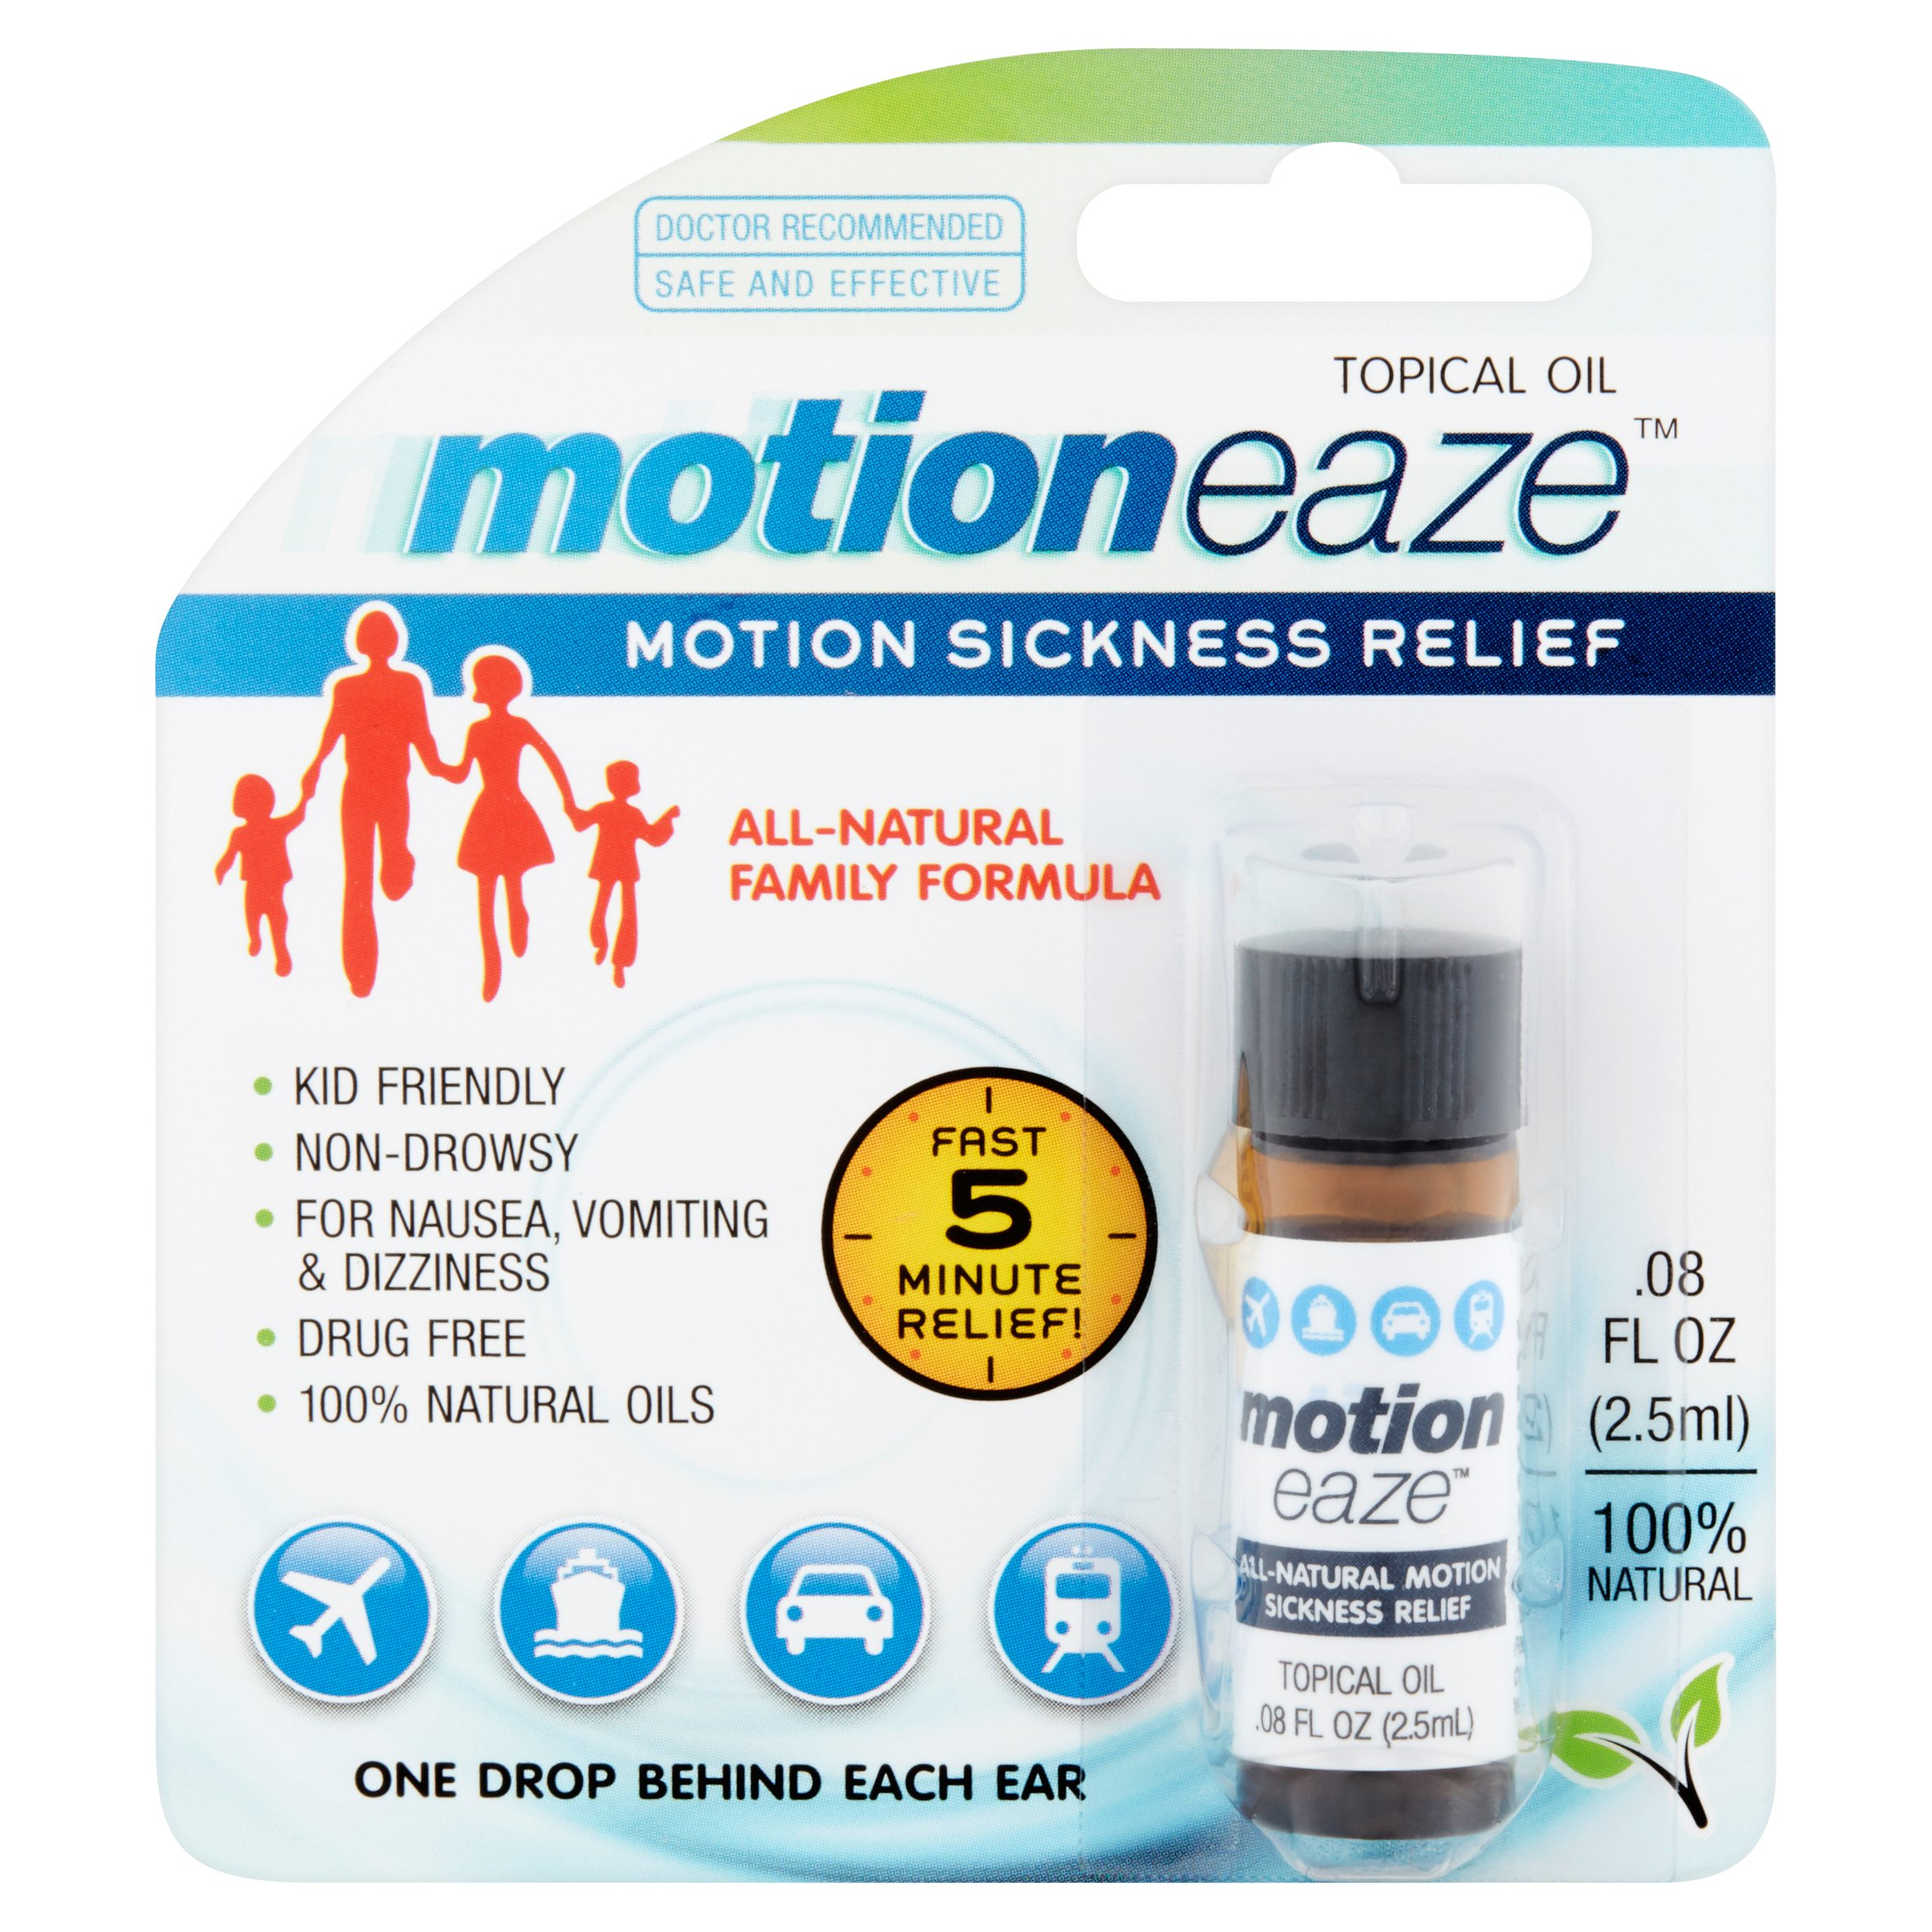 Motioneaze Motion Sickness Relief Topical Oil, .08 fl oz, 20 application